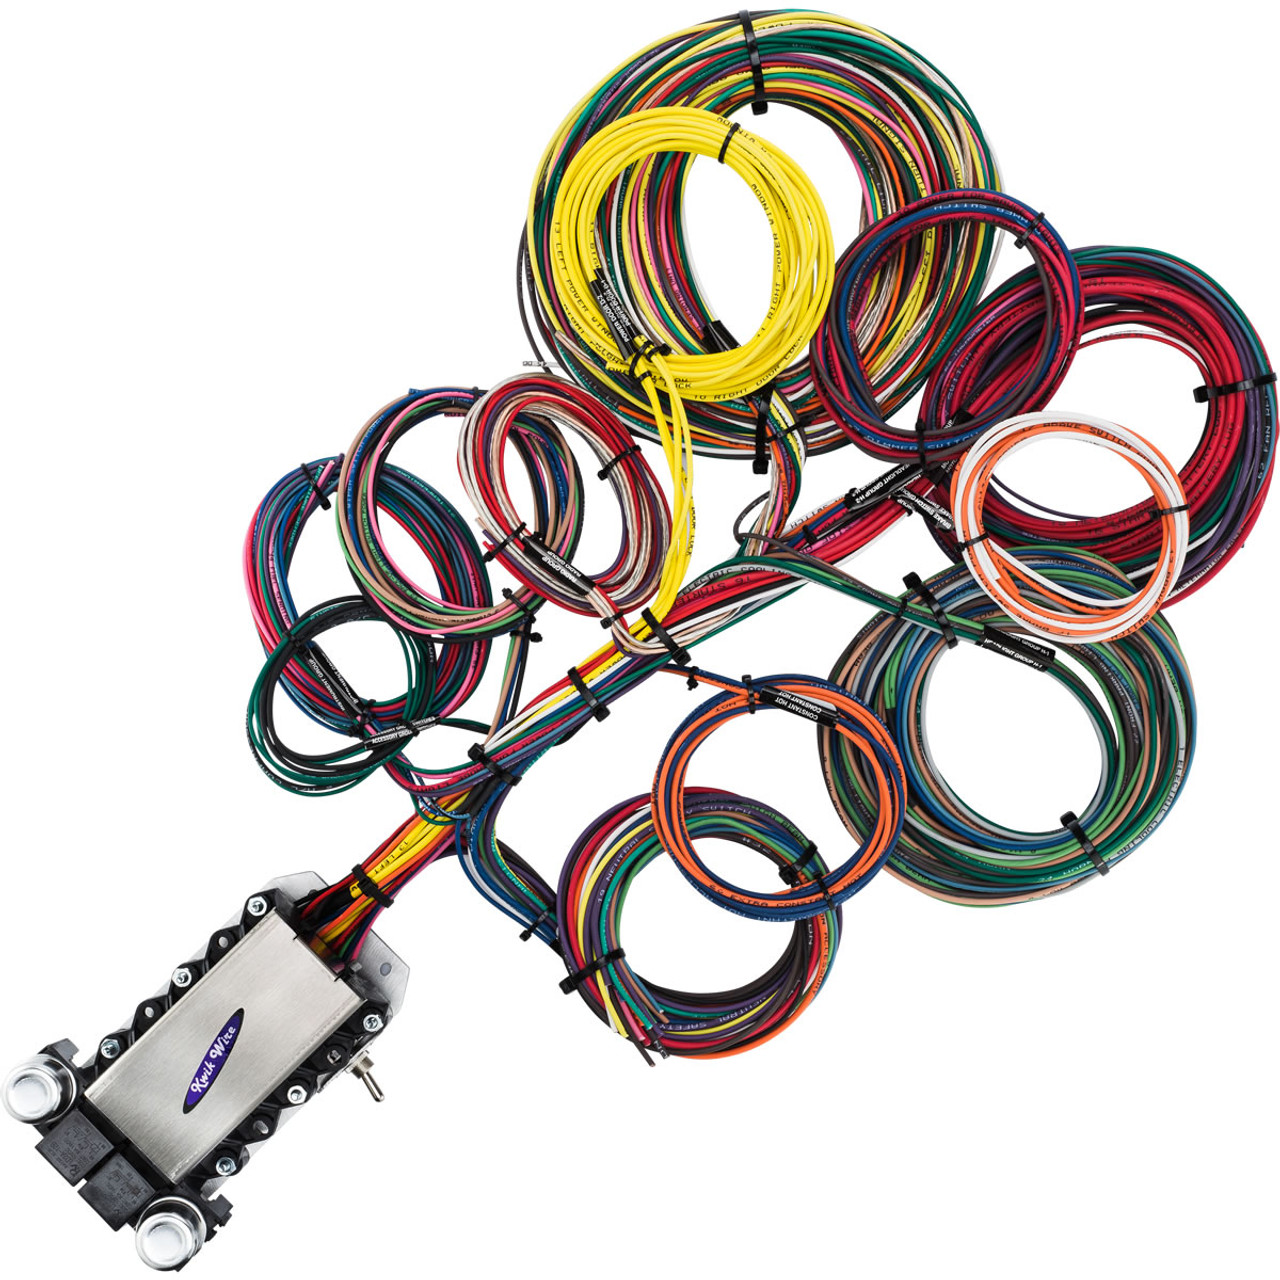 medium resolution of 22 circuit wire harness kwikwire com electrify your ride wire harness instructions wire harness instruction